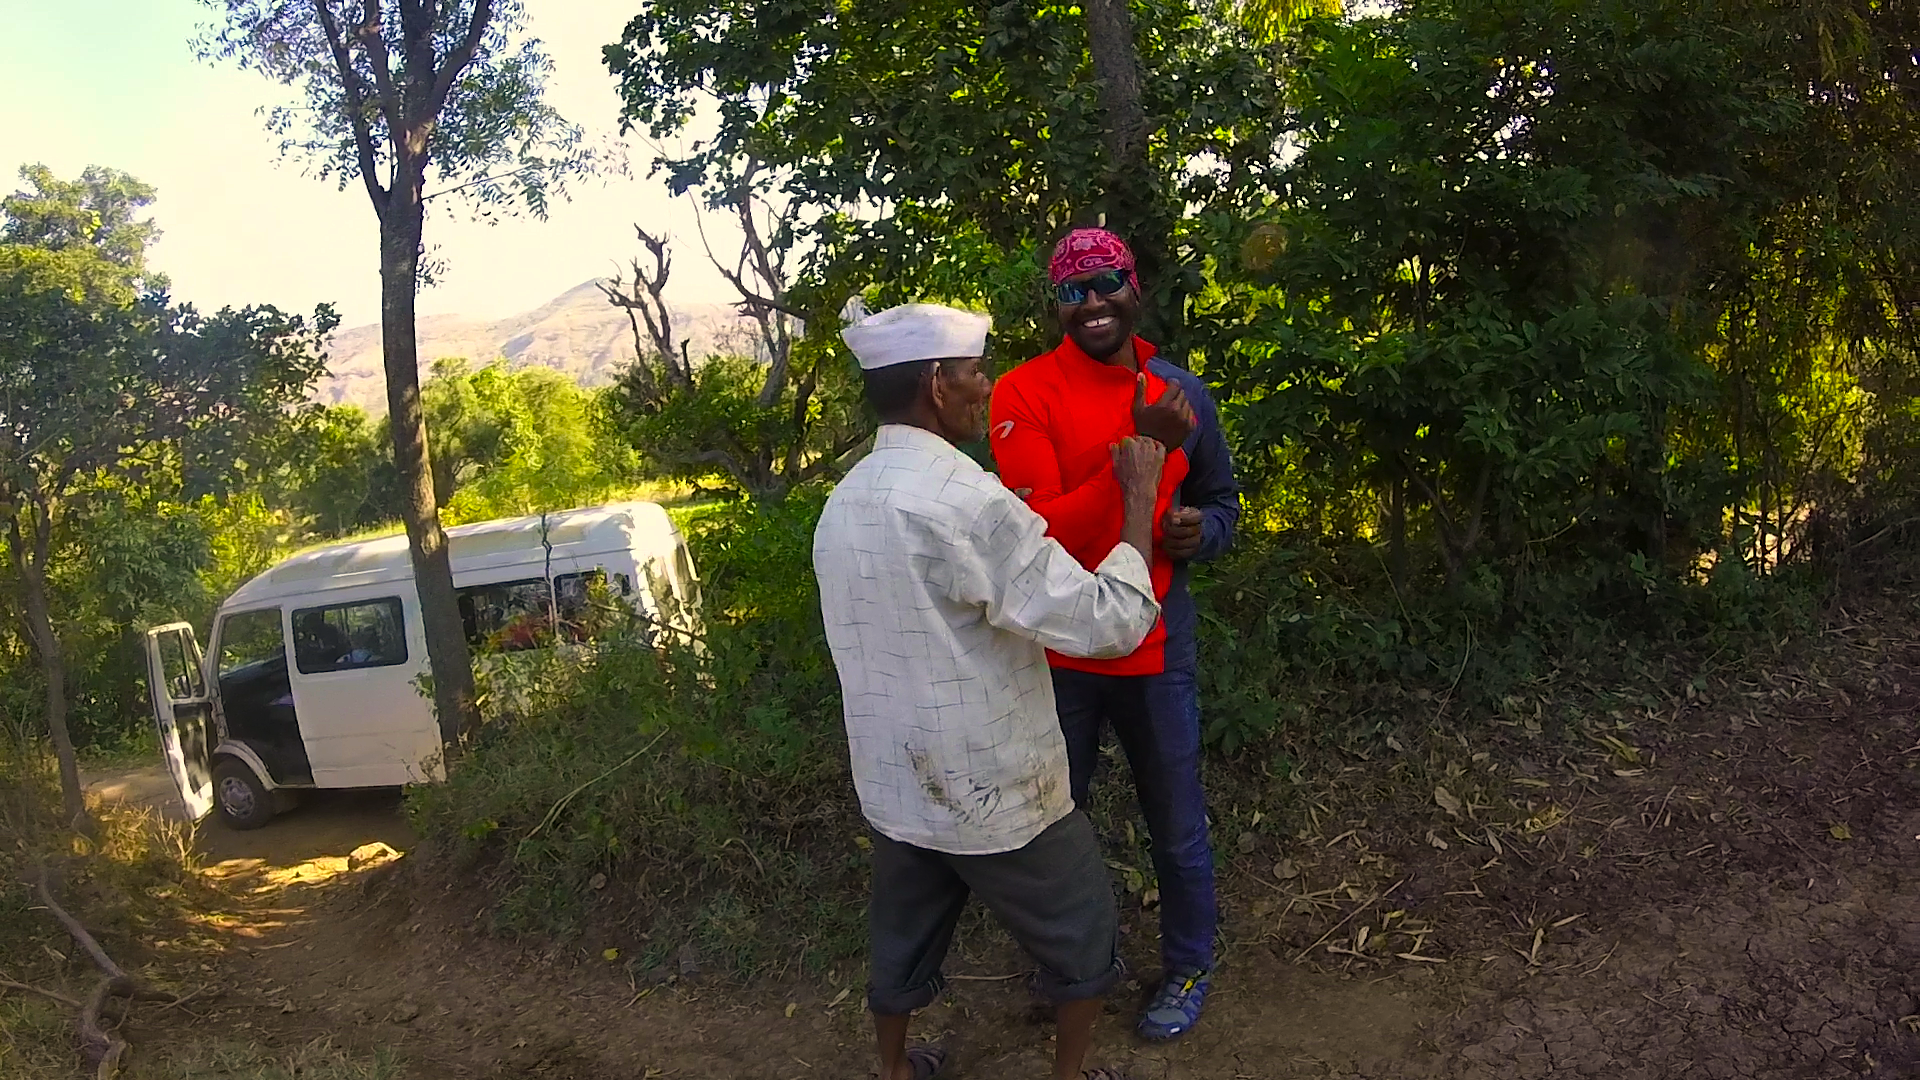 Farmer and Pilot - Ravi Shelar negotiates landing issues with a smile.